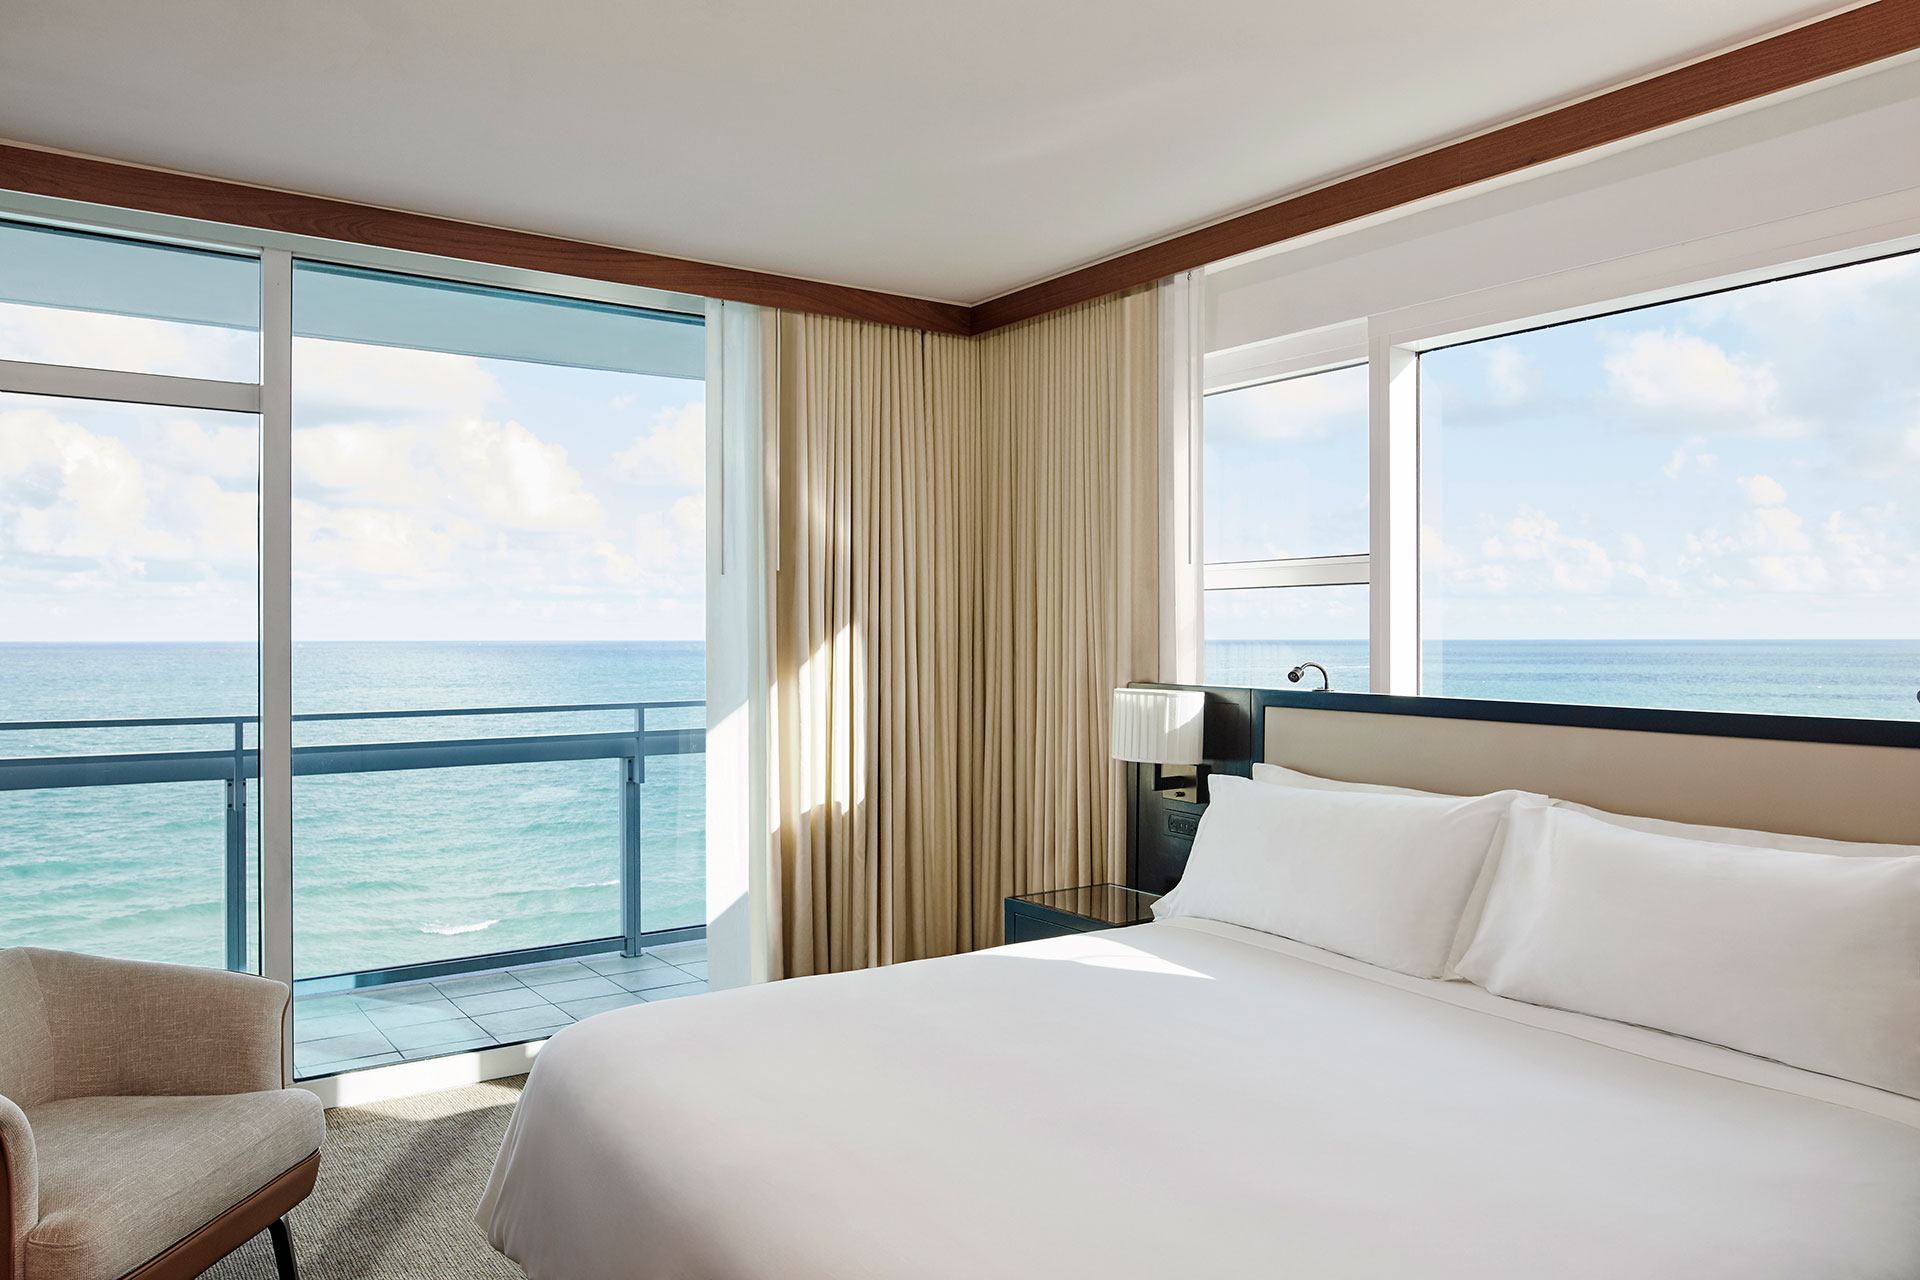 an ocean view suite with a balcony. The bed is on the right side of the room with crisp white linens. There is a black bedside table and a light colored chair in the left corner.